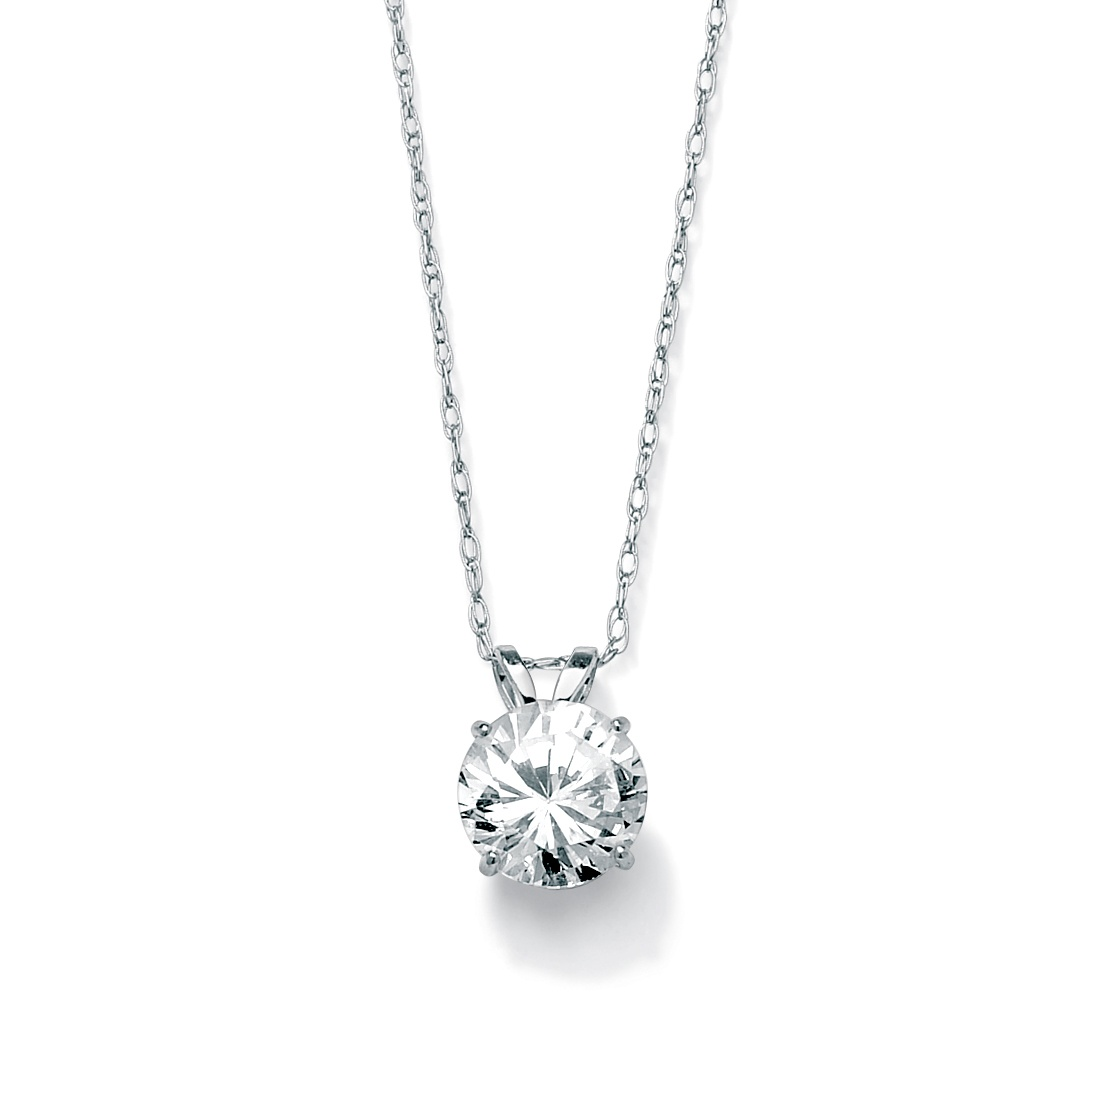 1 25 Tcw Round Cubic Zirconia Solitaire Pendant Necklace